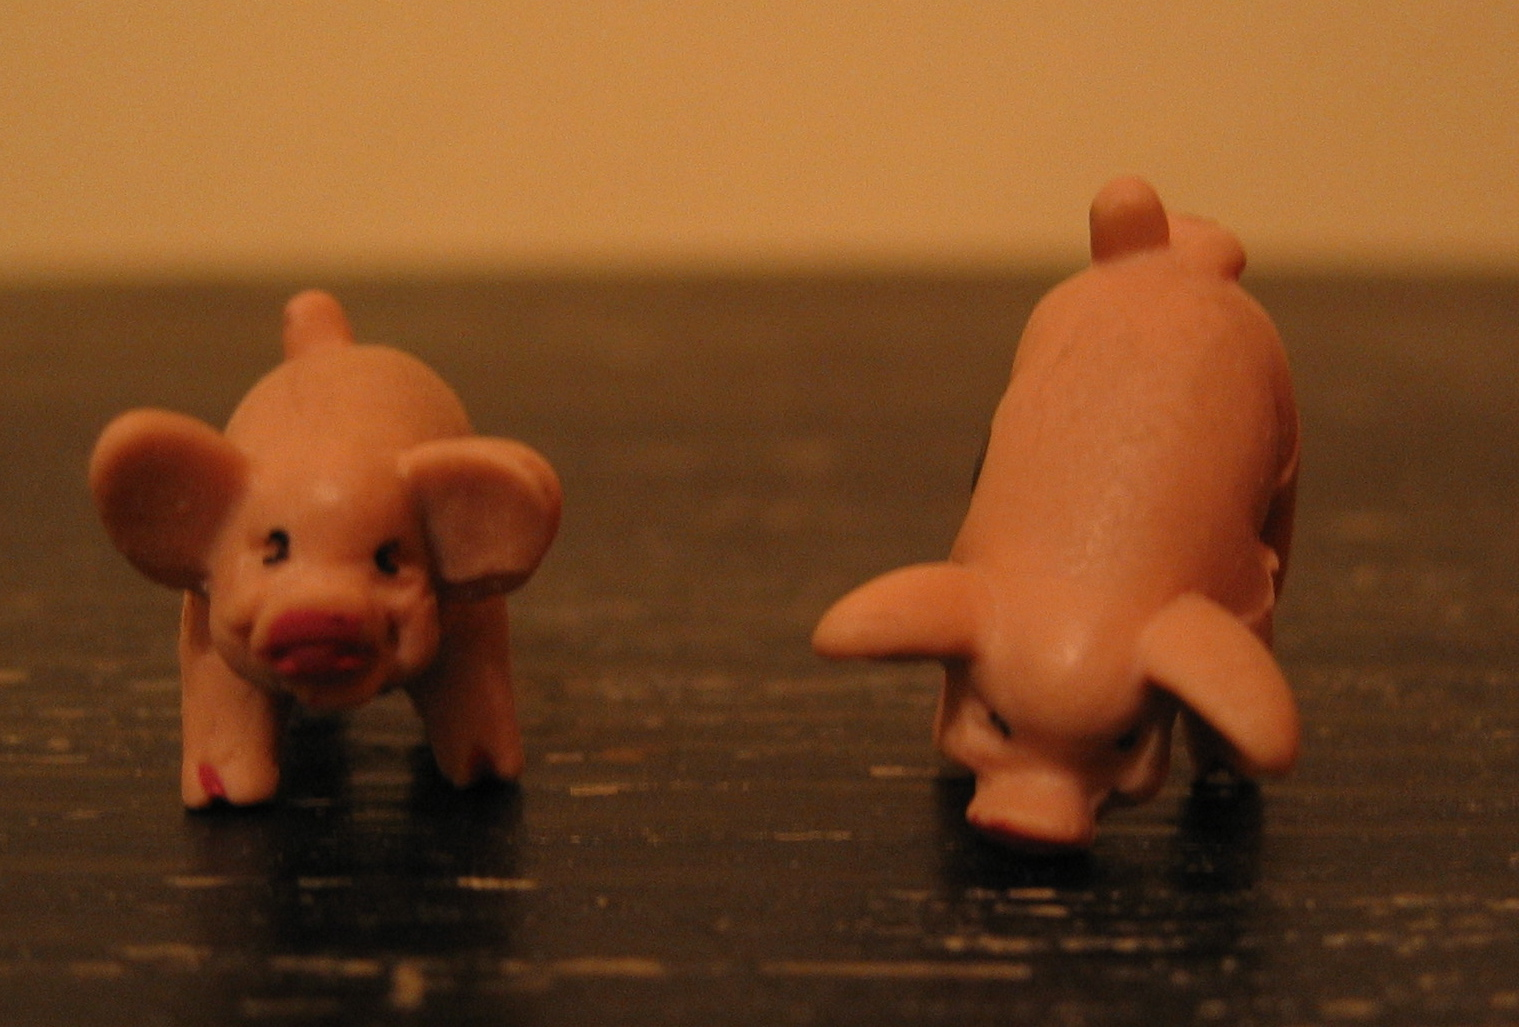 File:Pass pigs dice jpg - Wikimedia Commons